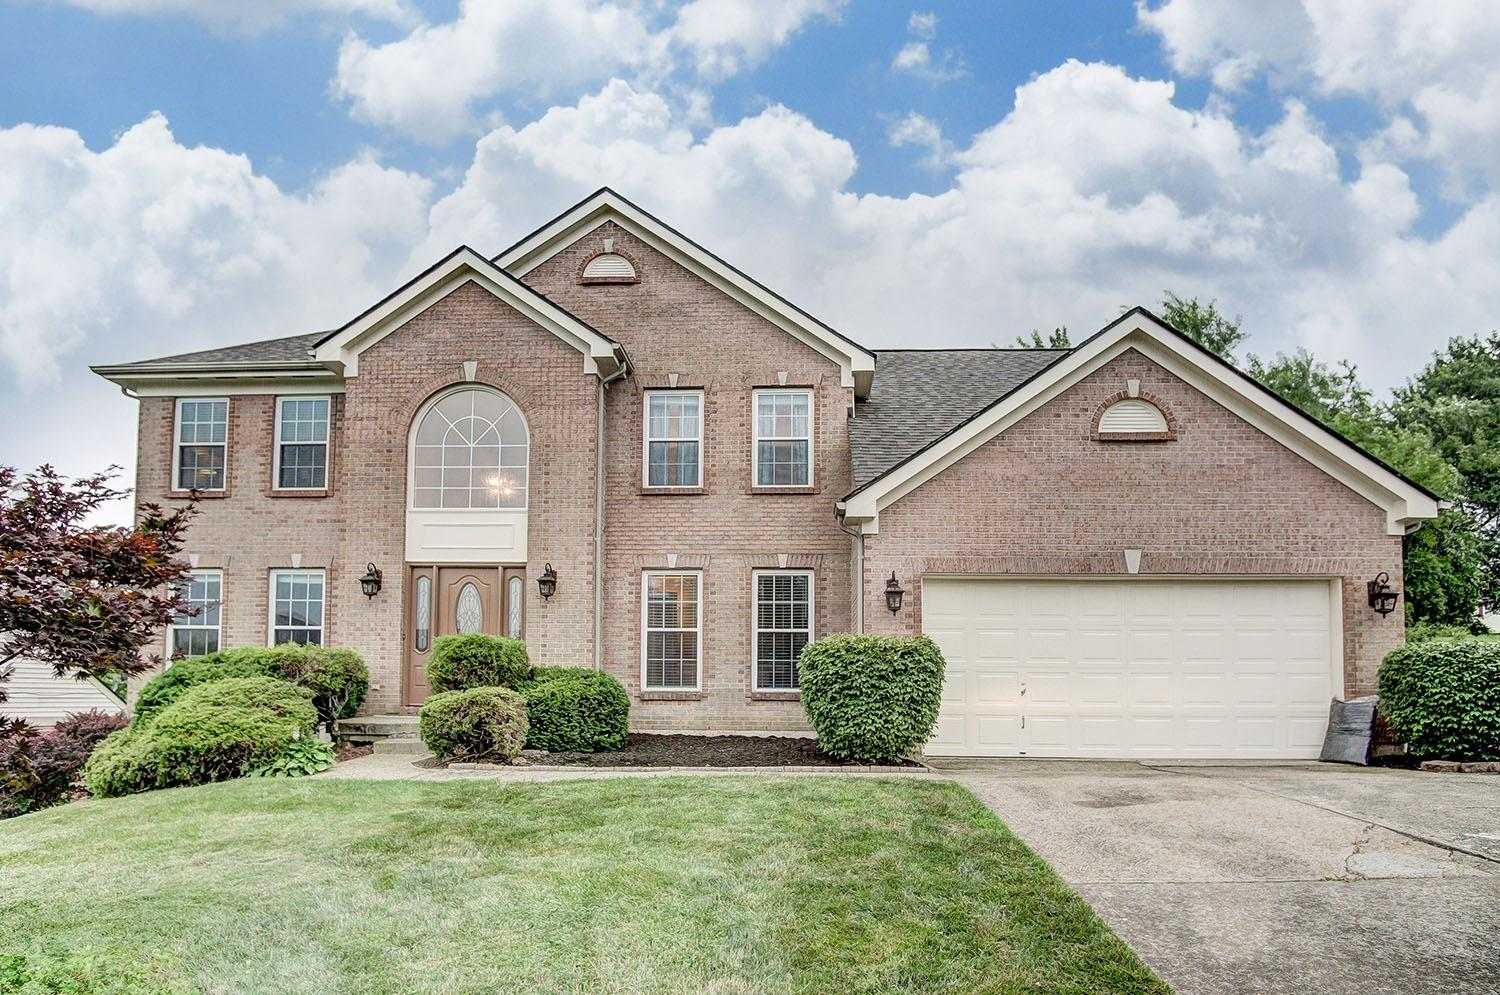 9614 Semaphore Ct West Chester - East, OH